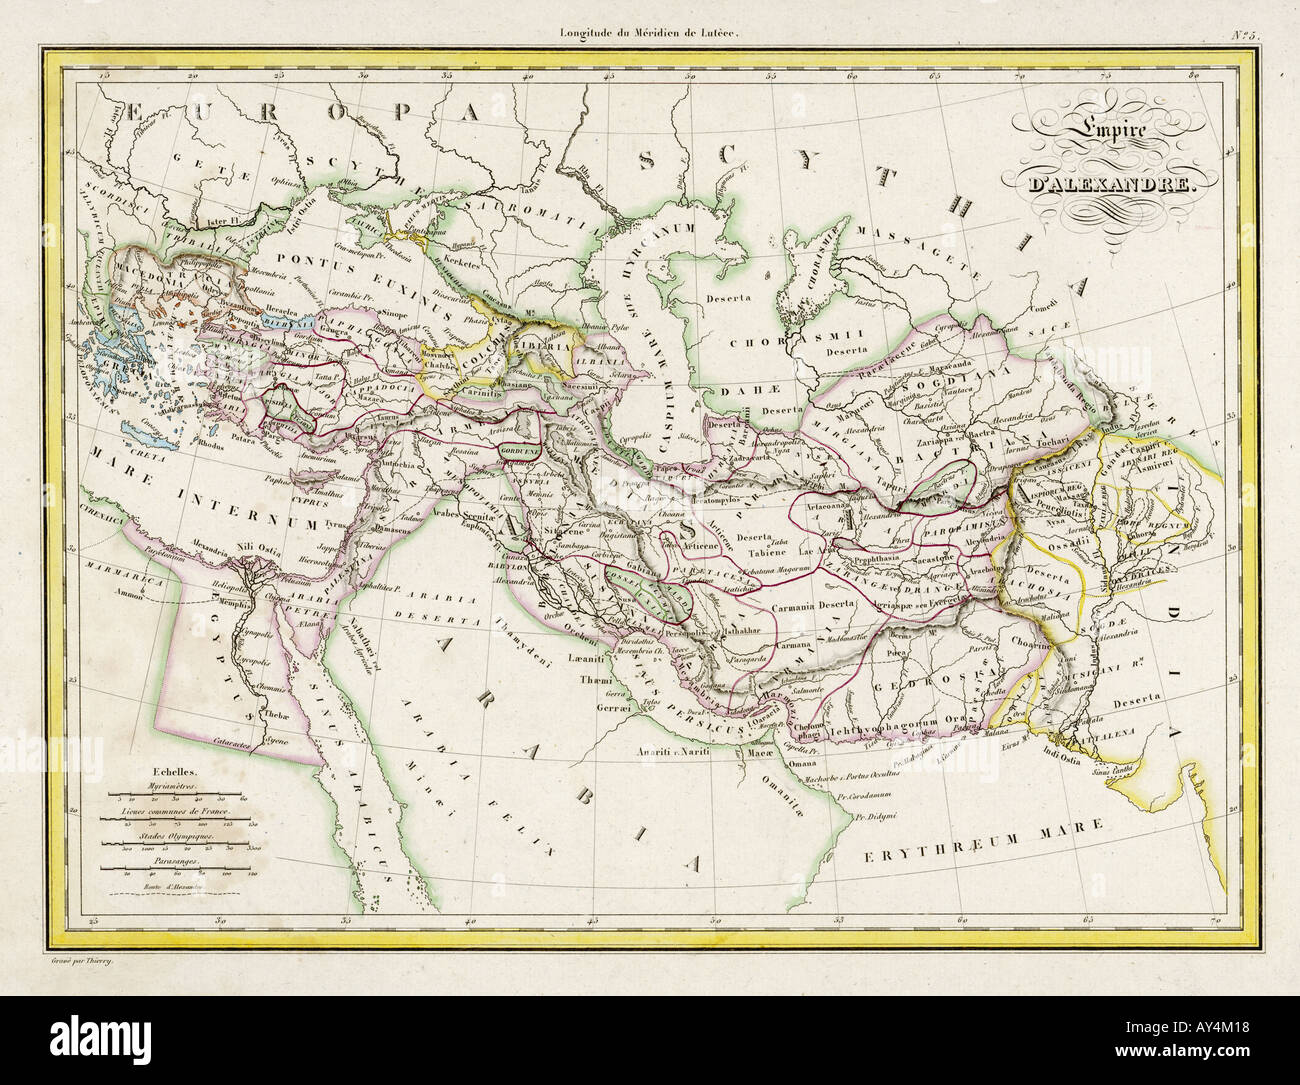 Map of greece stock photos map of greece stock images alamy map europe greece 323bc stock image gumiabroncs Images